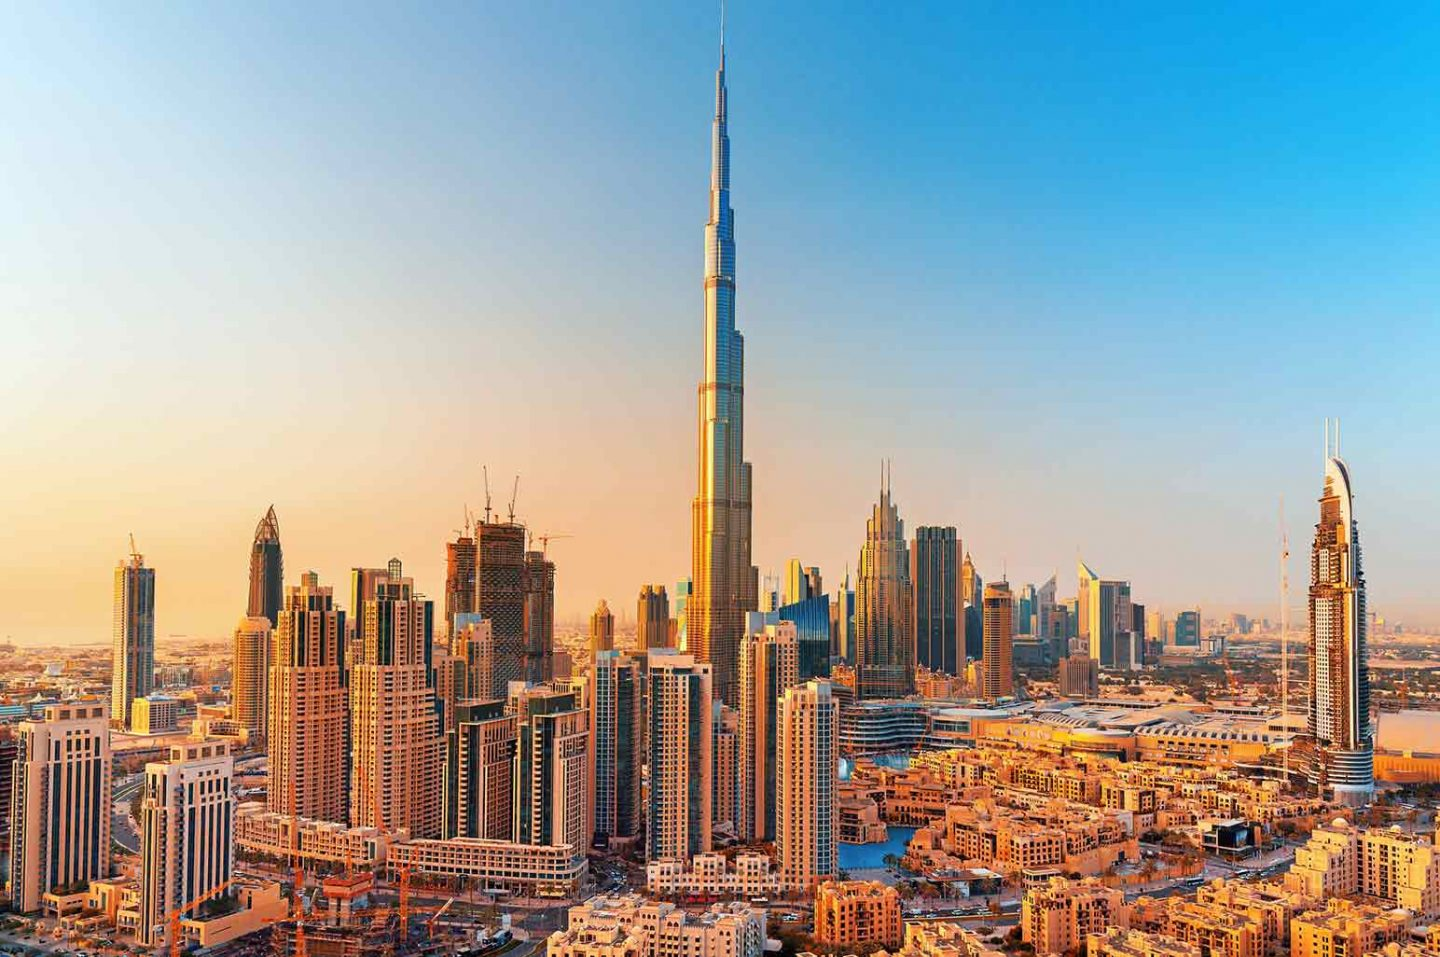 Things to Remember When Visiting Dubai